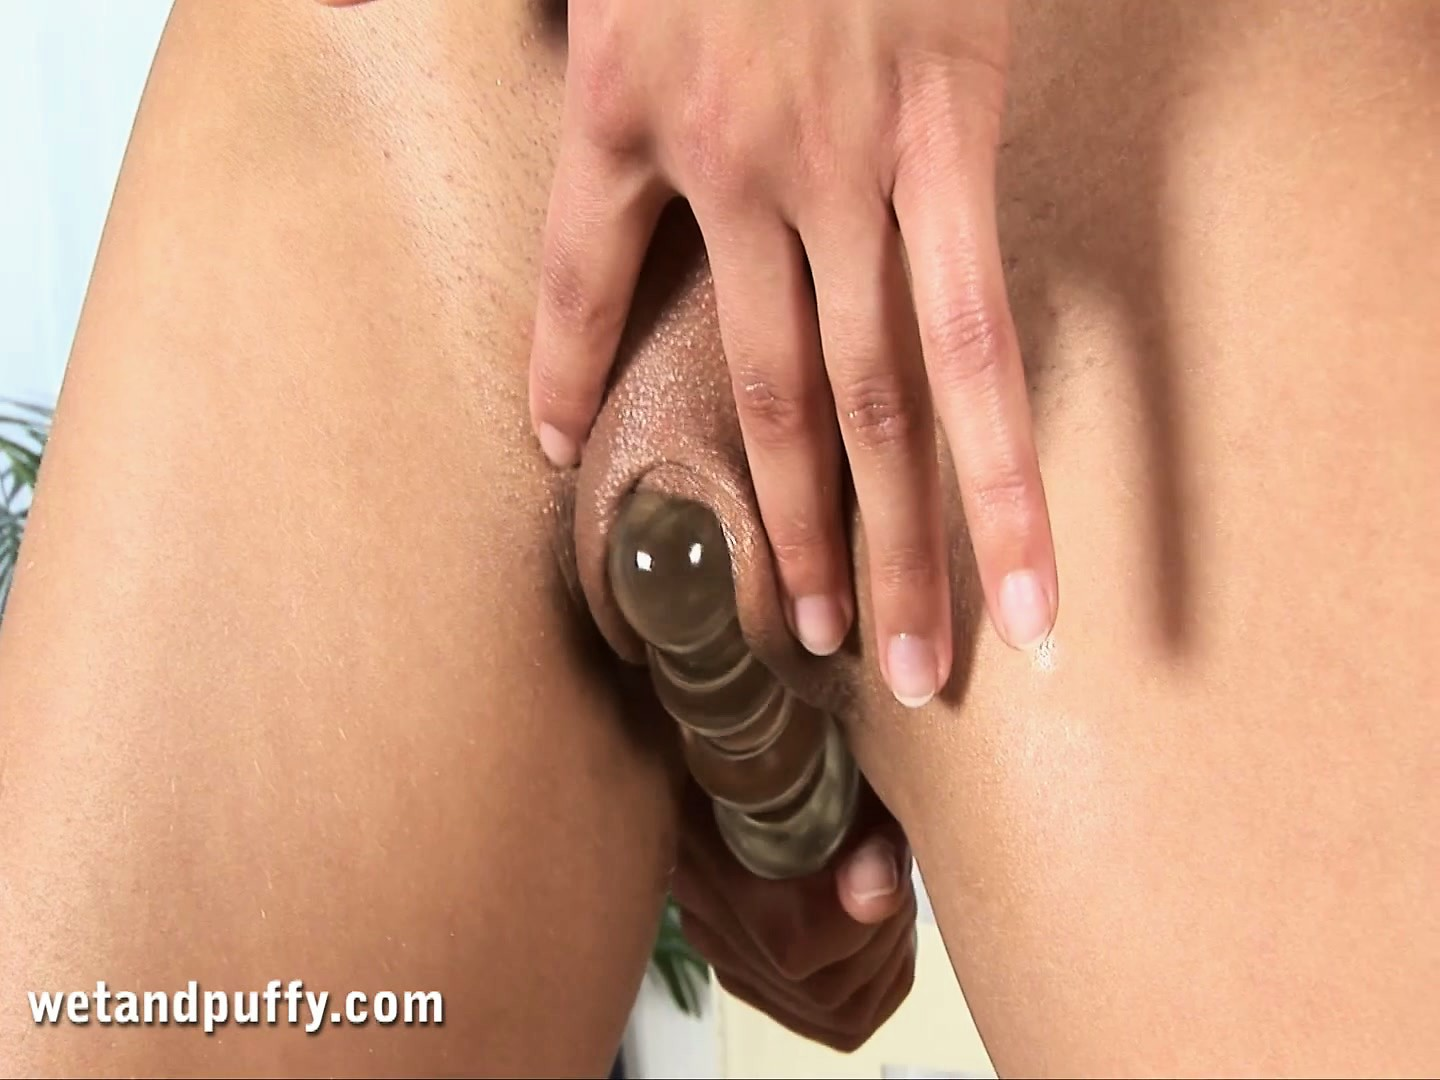 Porno Video of Victoria Sweet Pumps Her Clit Making It Supersensitive For Cumming